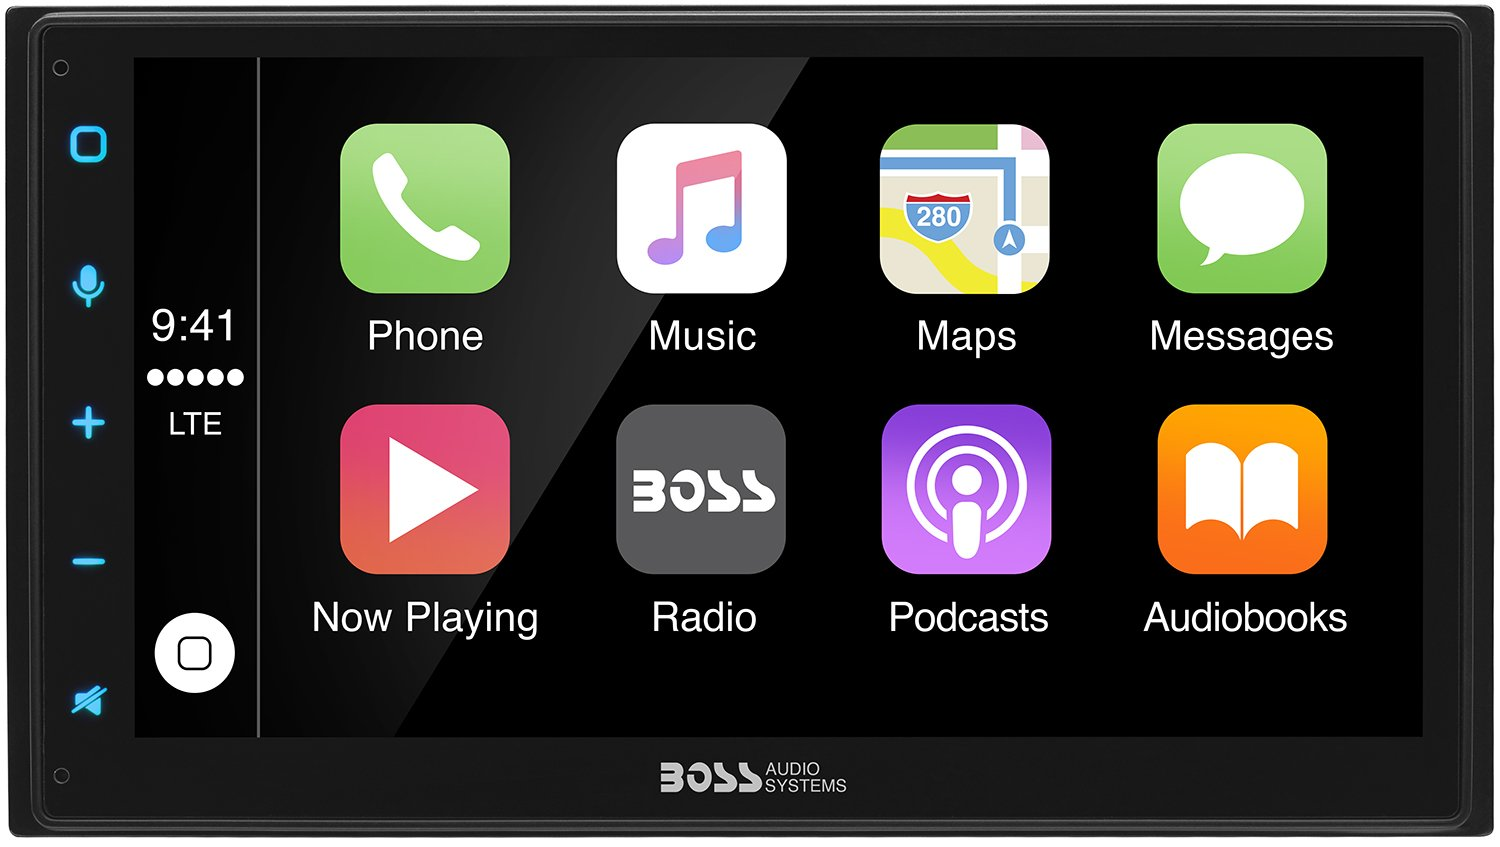 Boss Audio Bvcp9675a Double Din Apple Carplay Android 1761 Radio Wiring Harness For Toyota 87up Power 4 Speaker Shopstak Auto Bluetooth 675 Capacitive Touchscreen Mech Less No Cd Dvd Am Fm Receiver